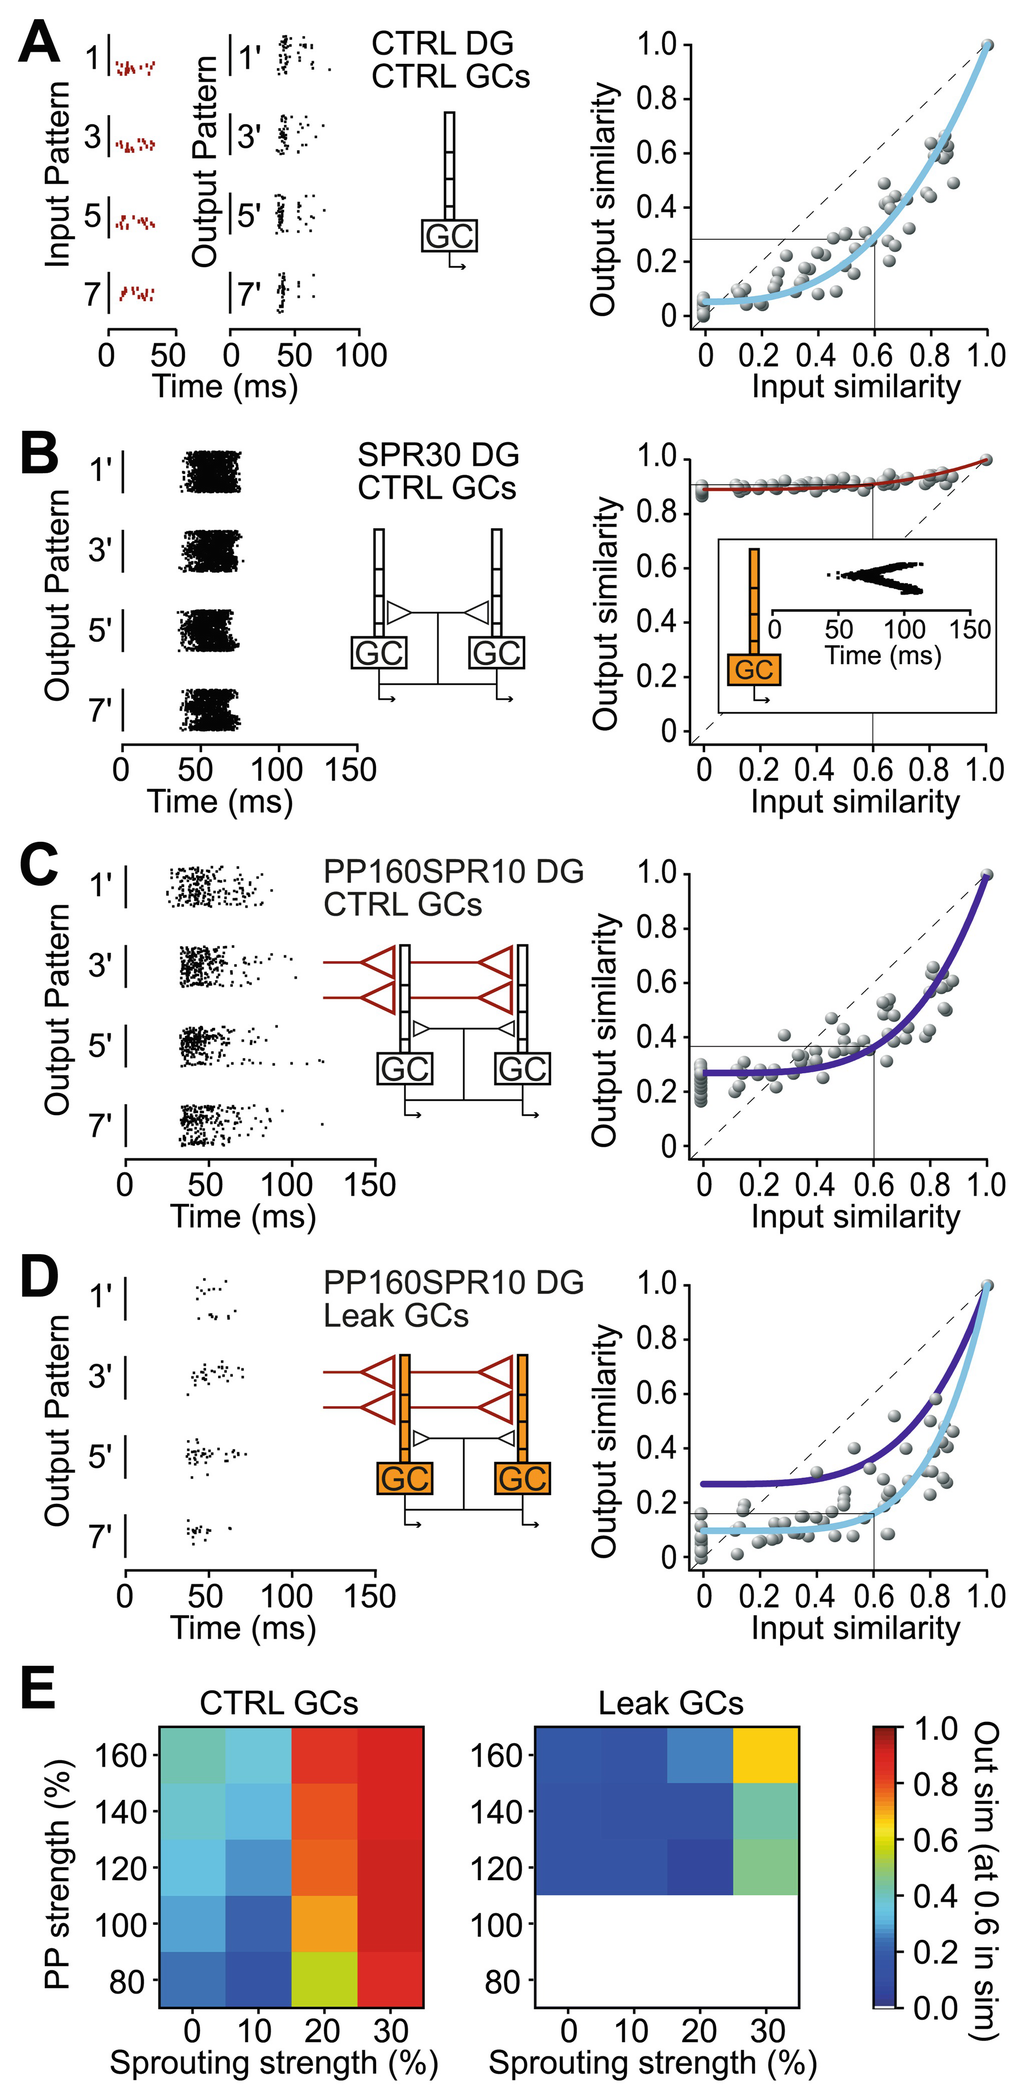 A Network Model Reveals That the Experimentally Observed Switch of